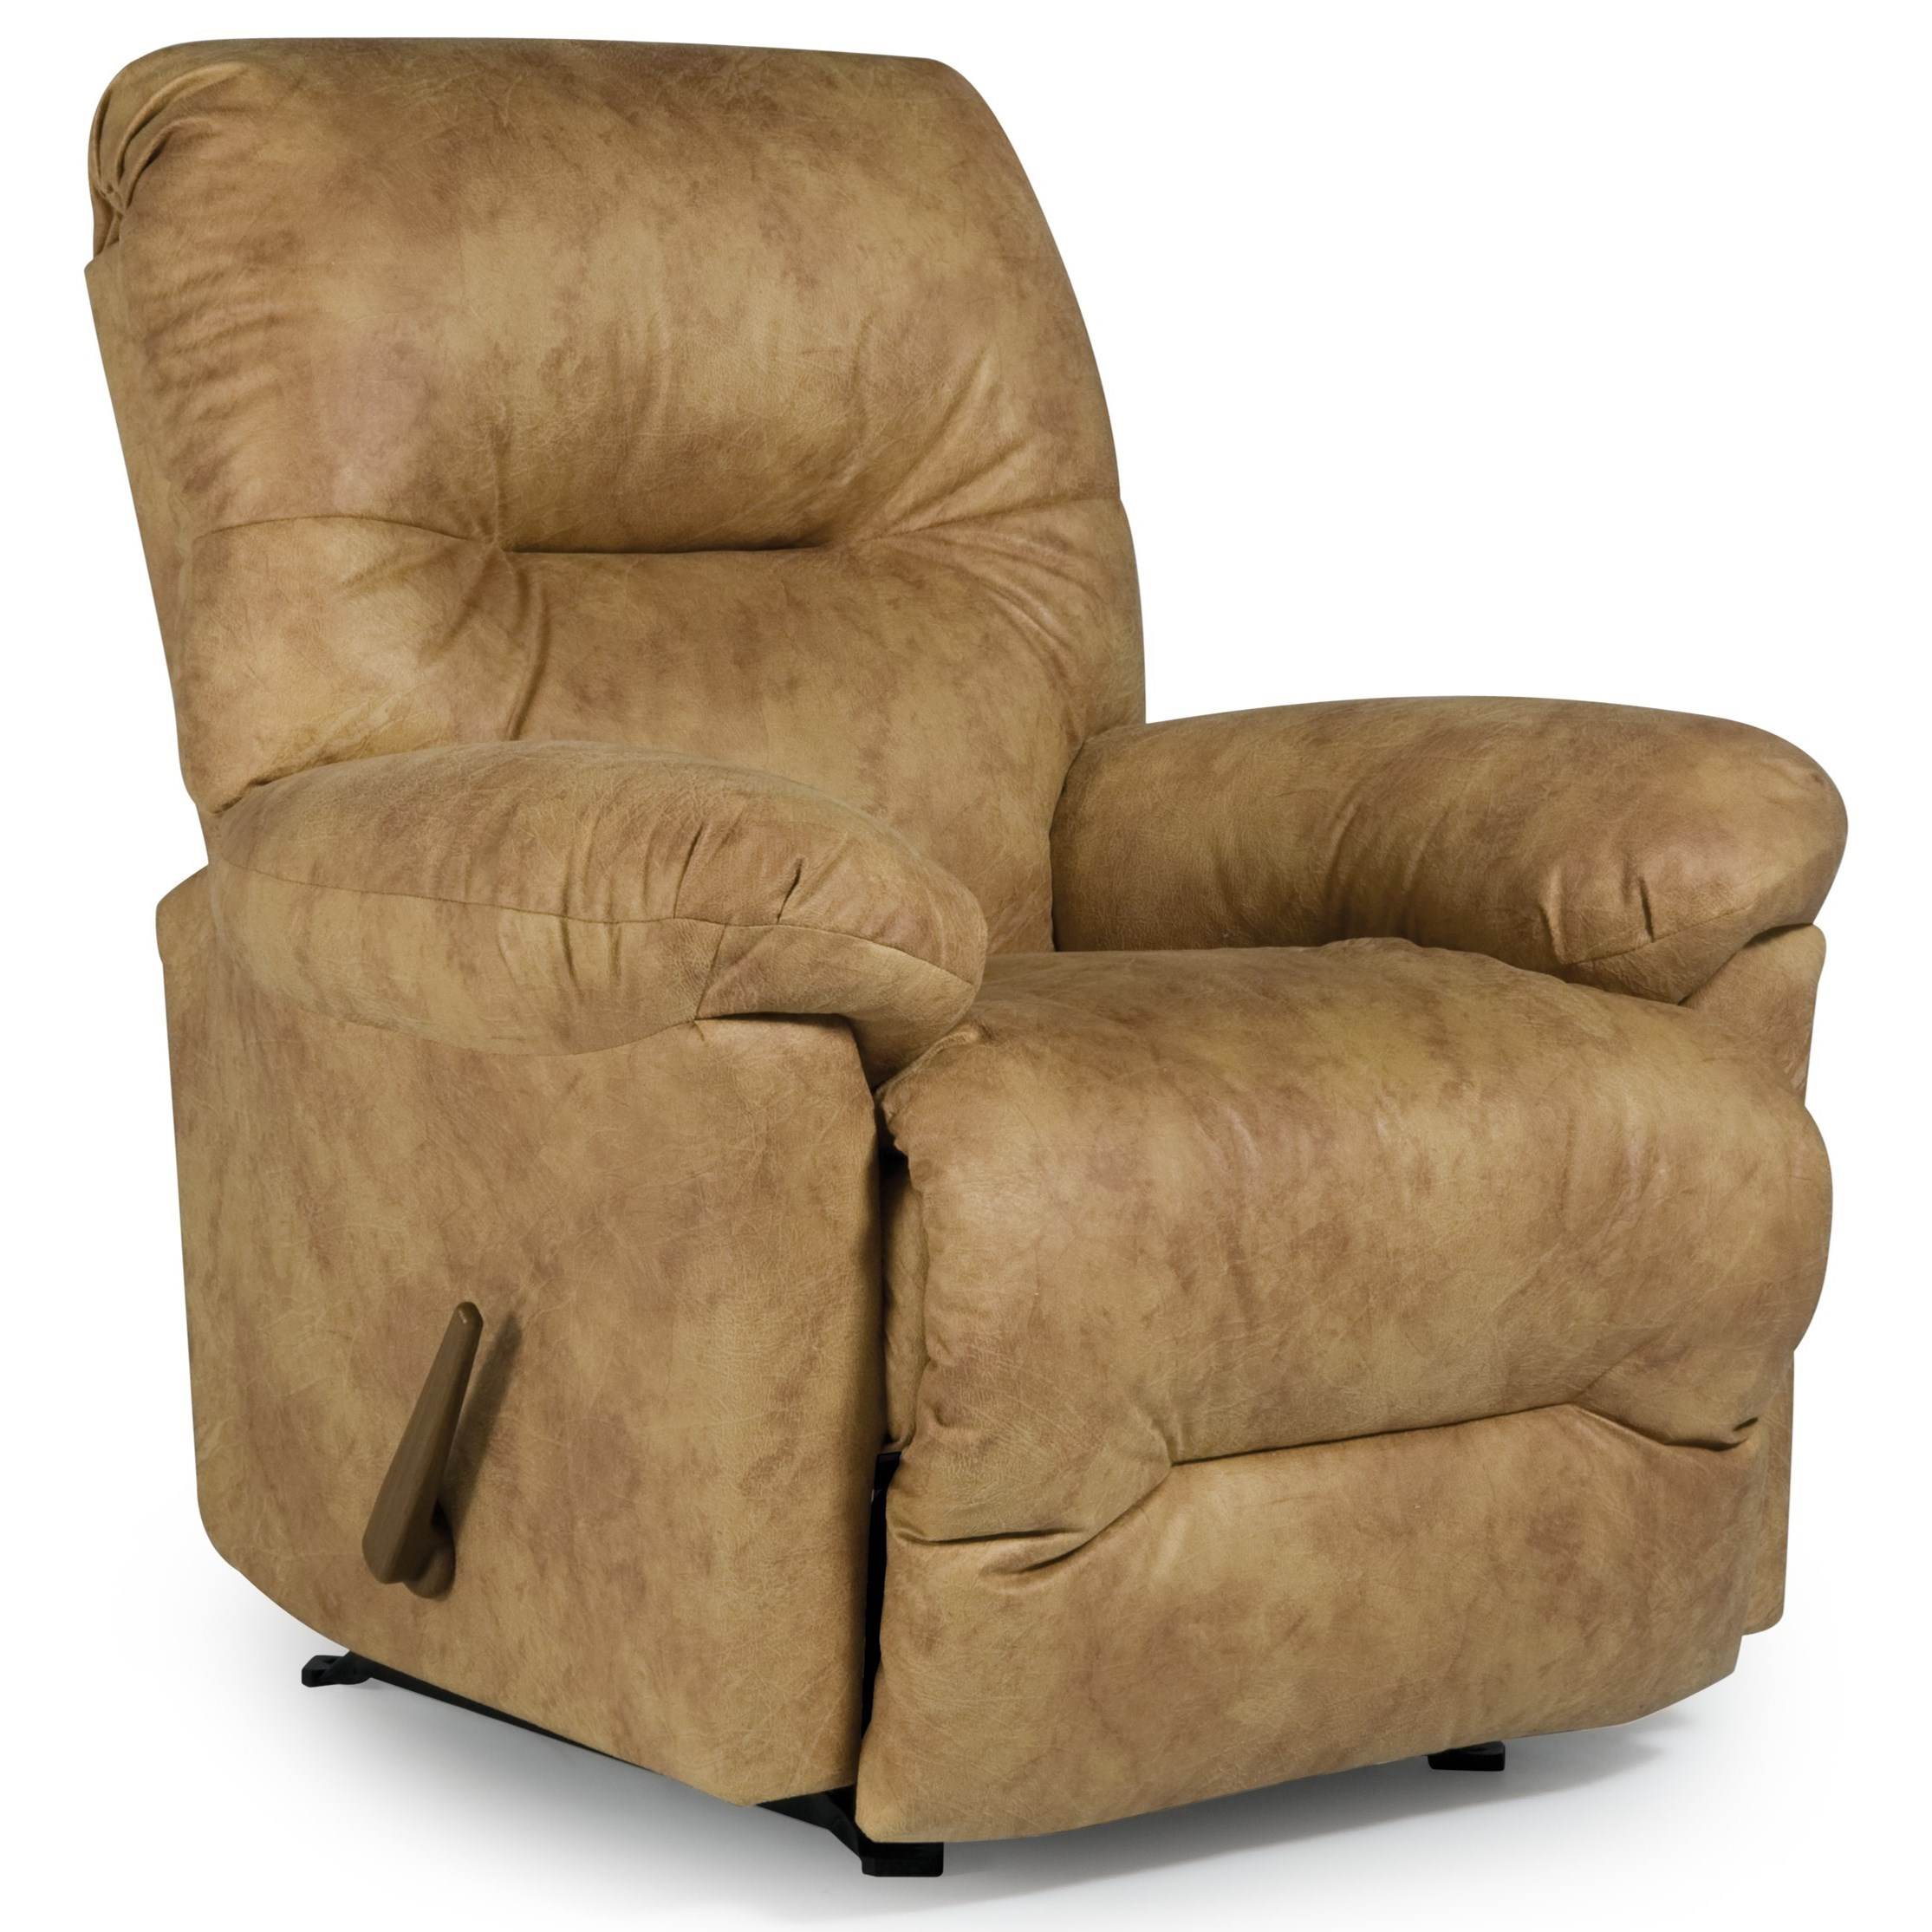 Best Home Furnishings Recliners - Medium Rodney Rocker Recliner - Item Number: 6N27